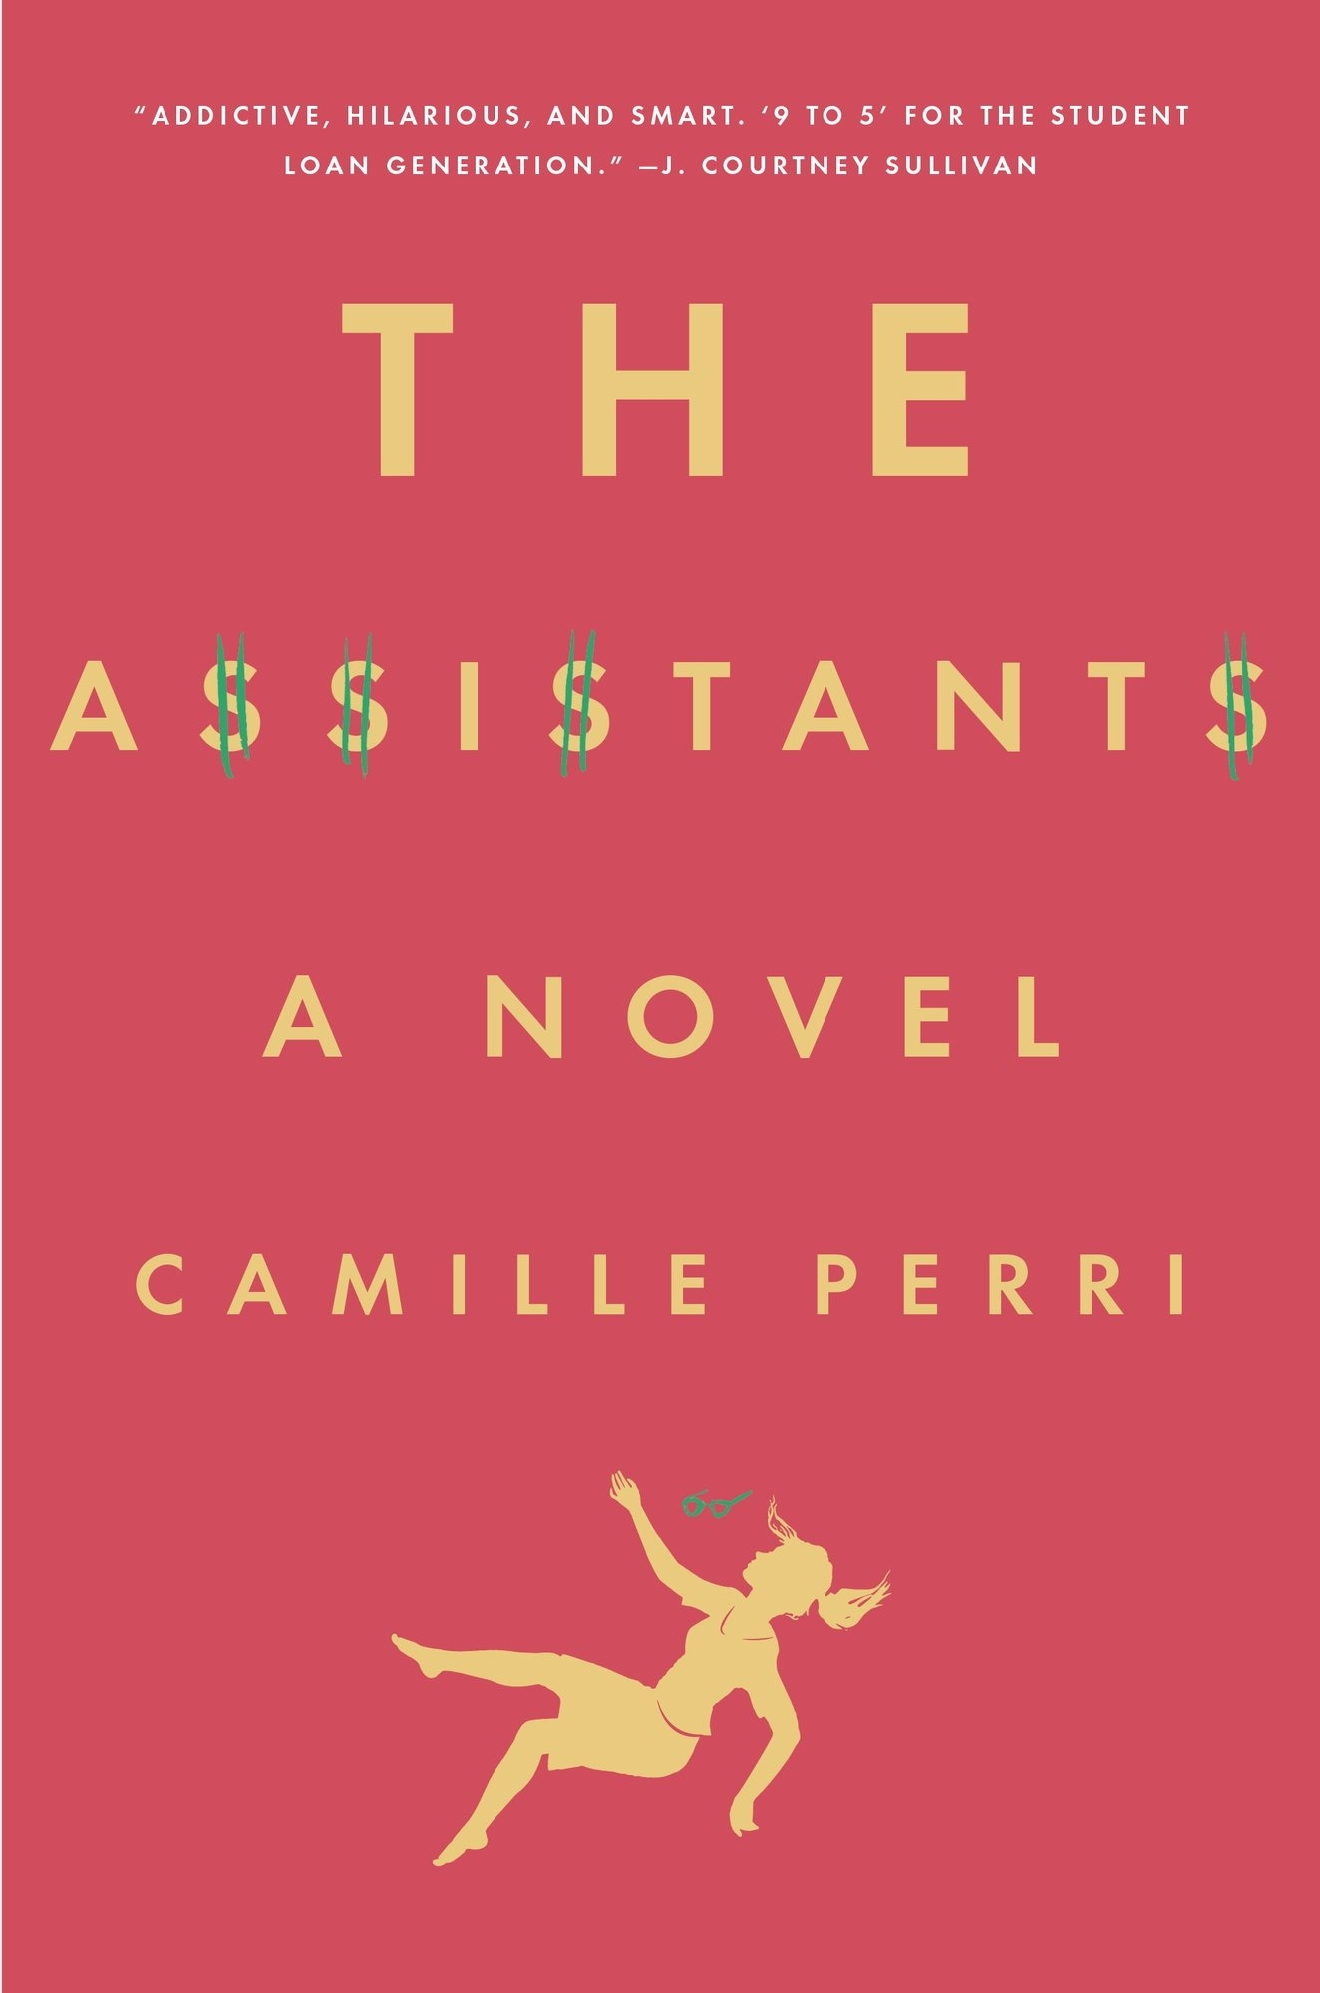 "Anyone who's ever known the struggle of student loans, or debt in general, will appreciate ""The Assistants."" This book follows the story of Tina, an underpaid and underestimated 30-something executive assistant to a big-shot CEO, who accidentally gets (and then cashes) a $20,000 check. Both suspenseful and funny, you'll likely find yourself asking whether Robin Hood got it right after all--what's so wrong about stealing if you're taking from the filthy rich and giving to the poor? (Photo: G.P. Putnam's Sons)"